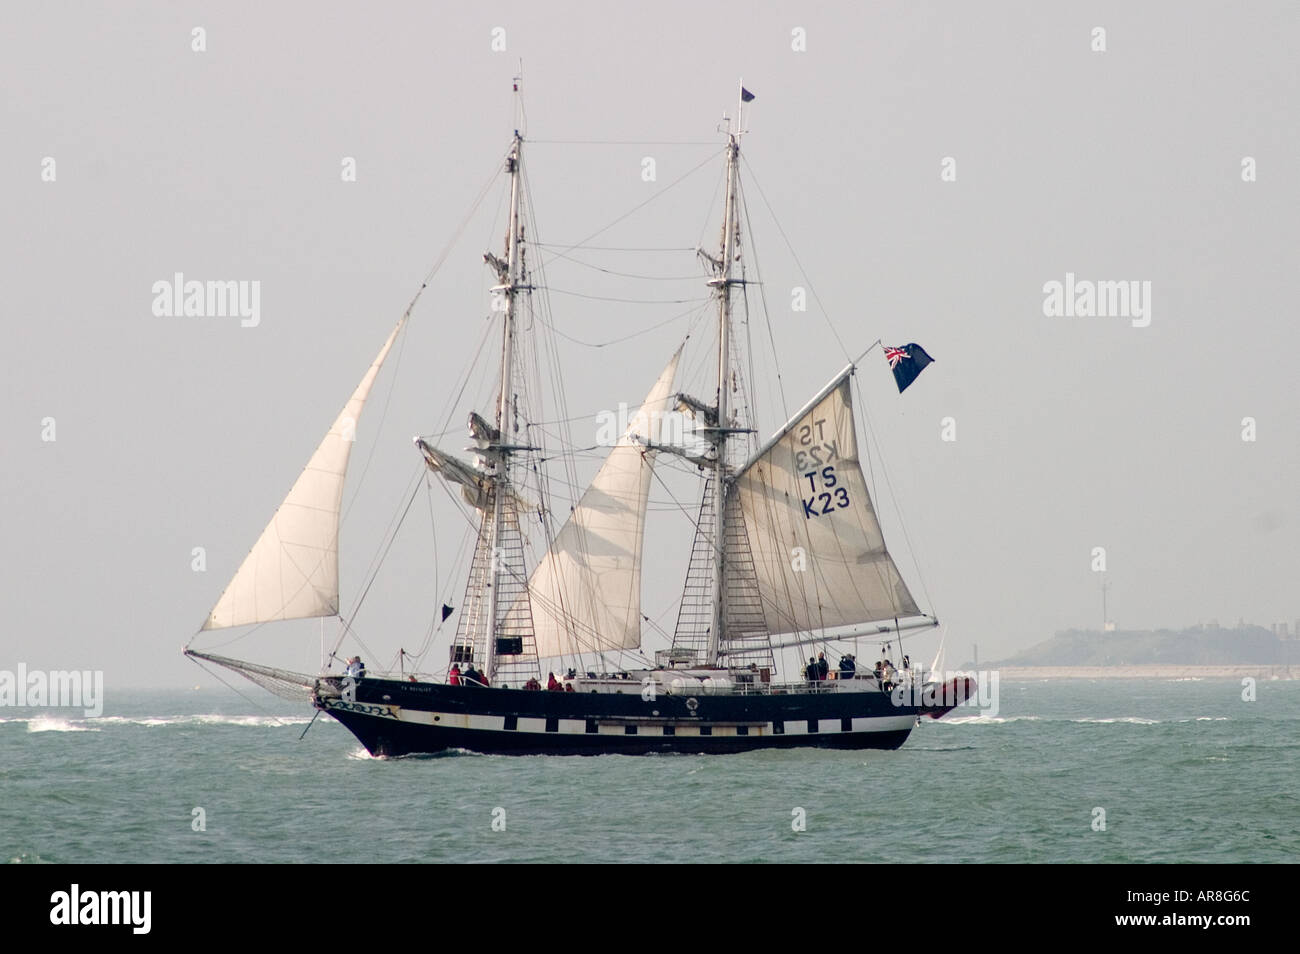 TS Royalist is a 29 metre brigantine - Stock Image